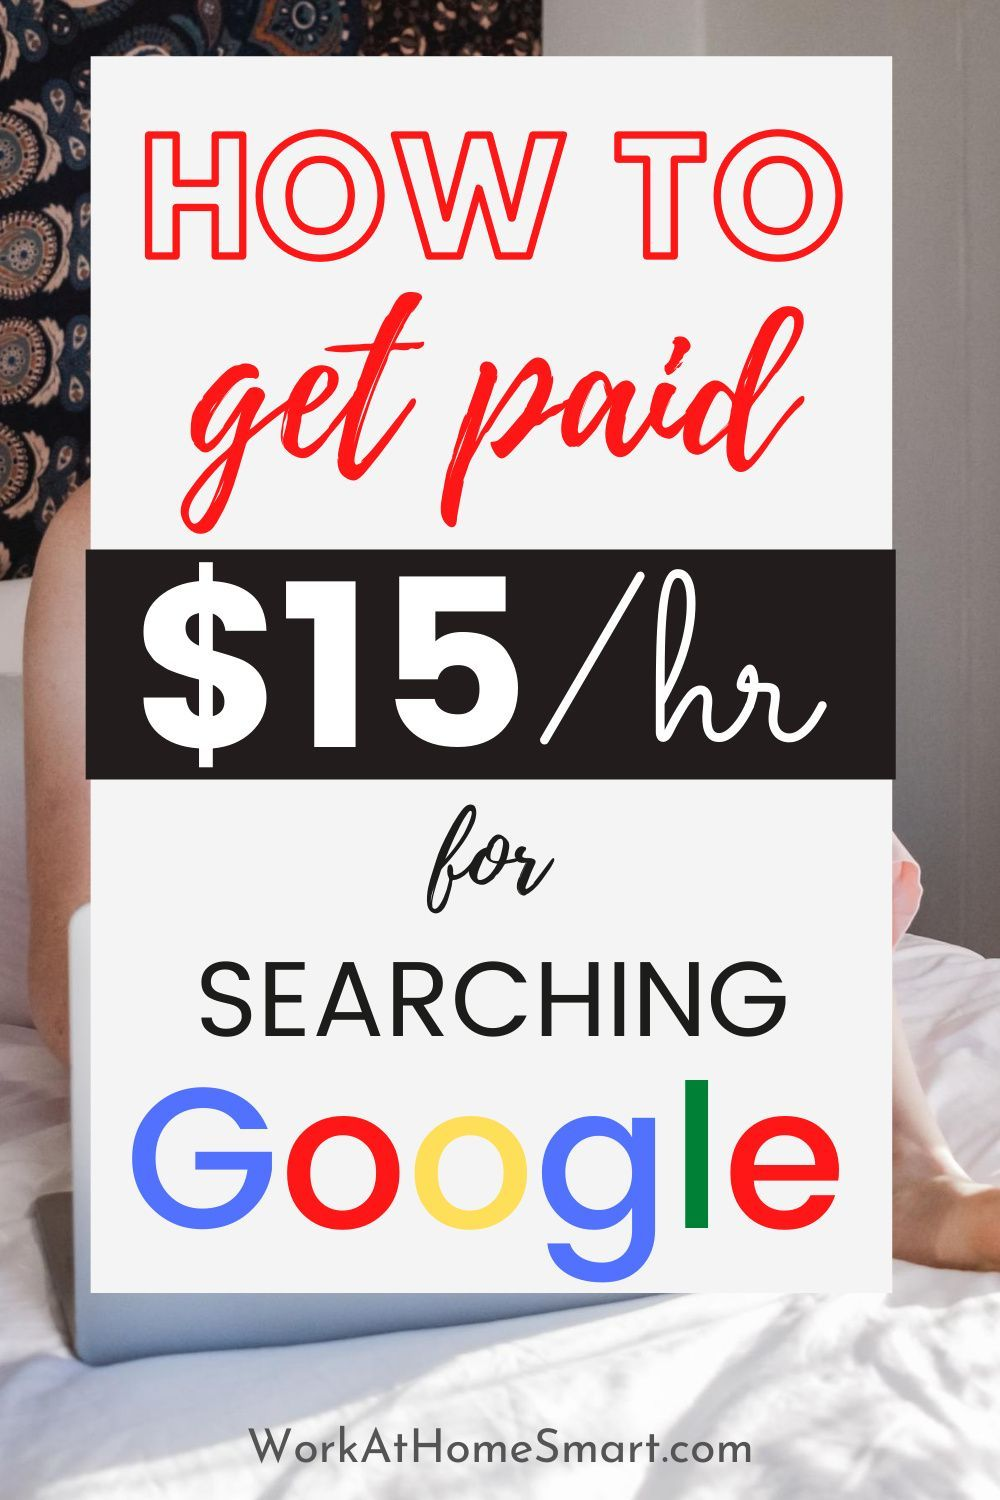 6 Best Search Engine Evaluator Jobs To Work From Home in